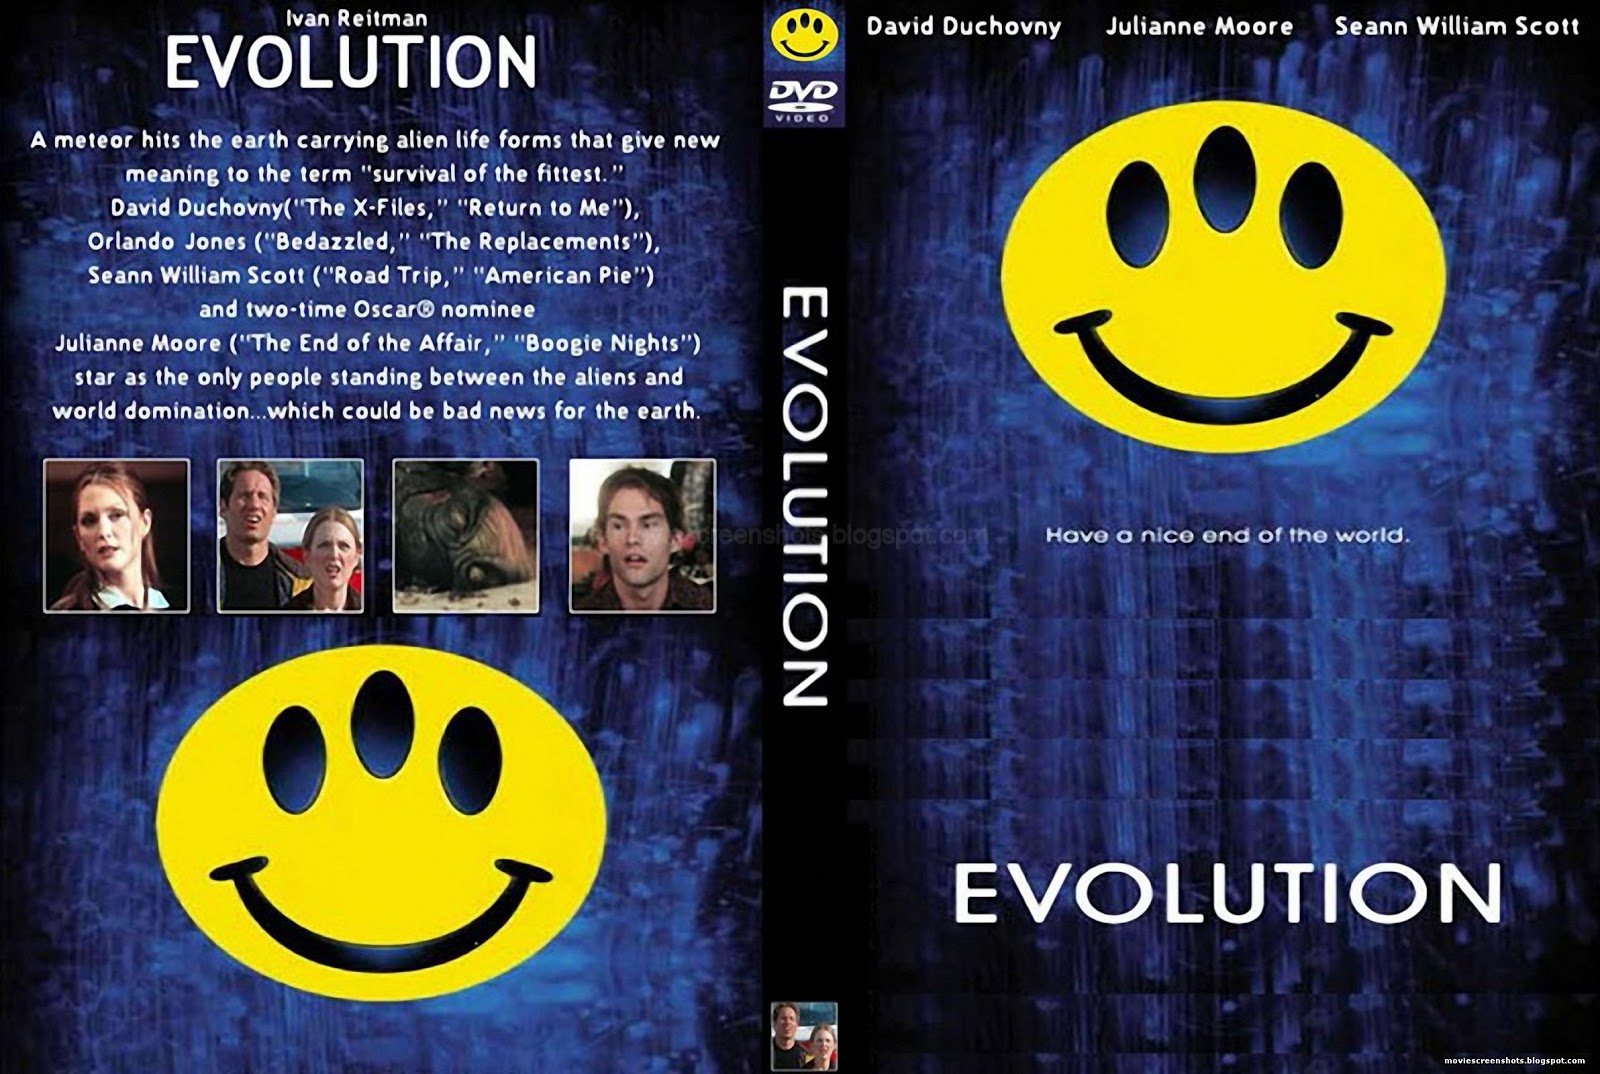 evolution of film Our series of short films for the classroom brings important scientific advances to life through fascinating stories of of darwin and wallace led each to independently discover the natural origin of species and to formulate the theory of evolution by natural selection also available in.